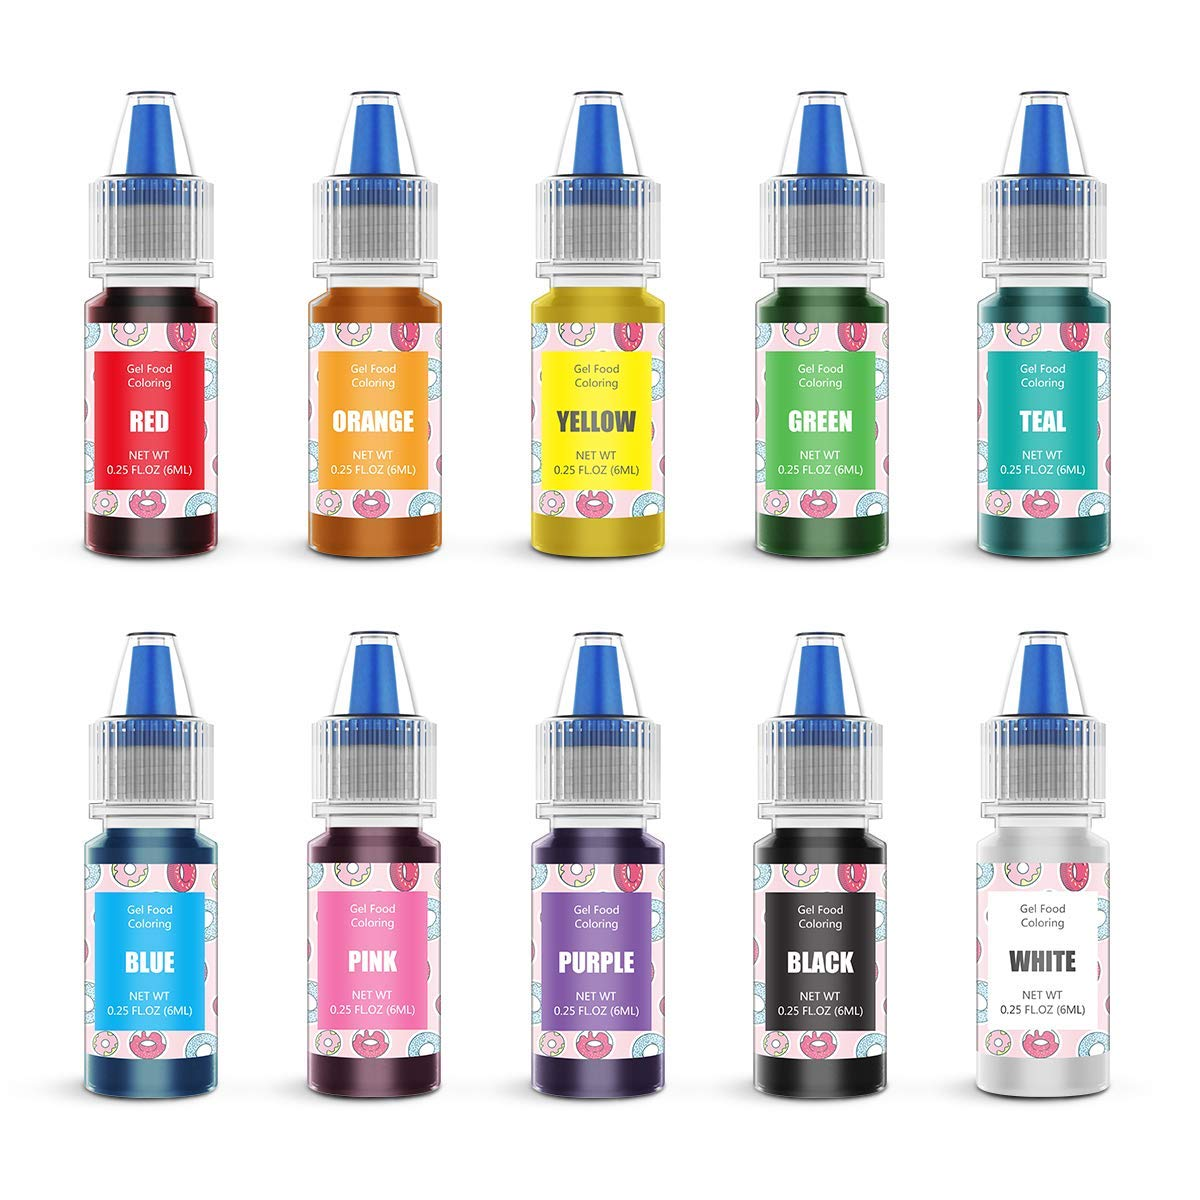 Gel Food Coloring 10 Colors Set - Jelife Gel Based Flavorless Edible Food Color Dye Vibrant Concentrated Neon Icing Colors for Kids Cake Decorating Baking Macaron Frosting Fondant Cookie (6ml/Bottles)